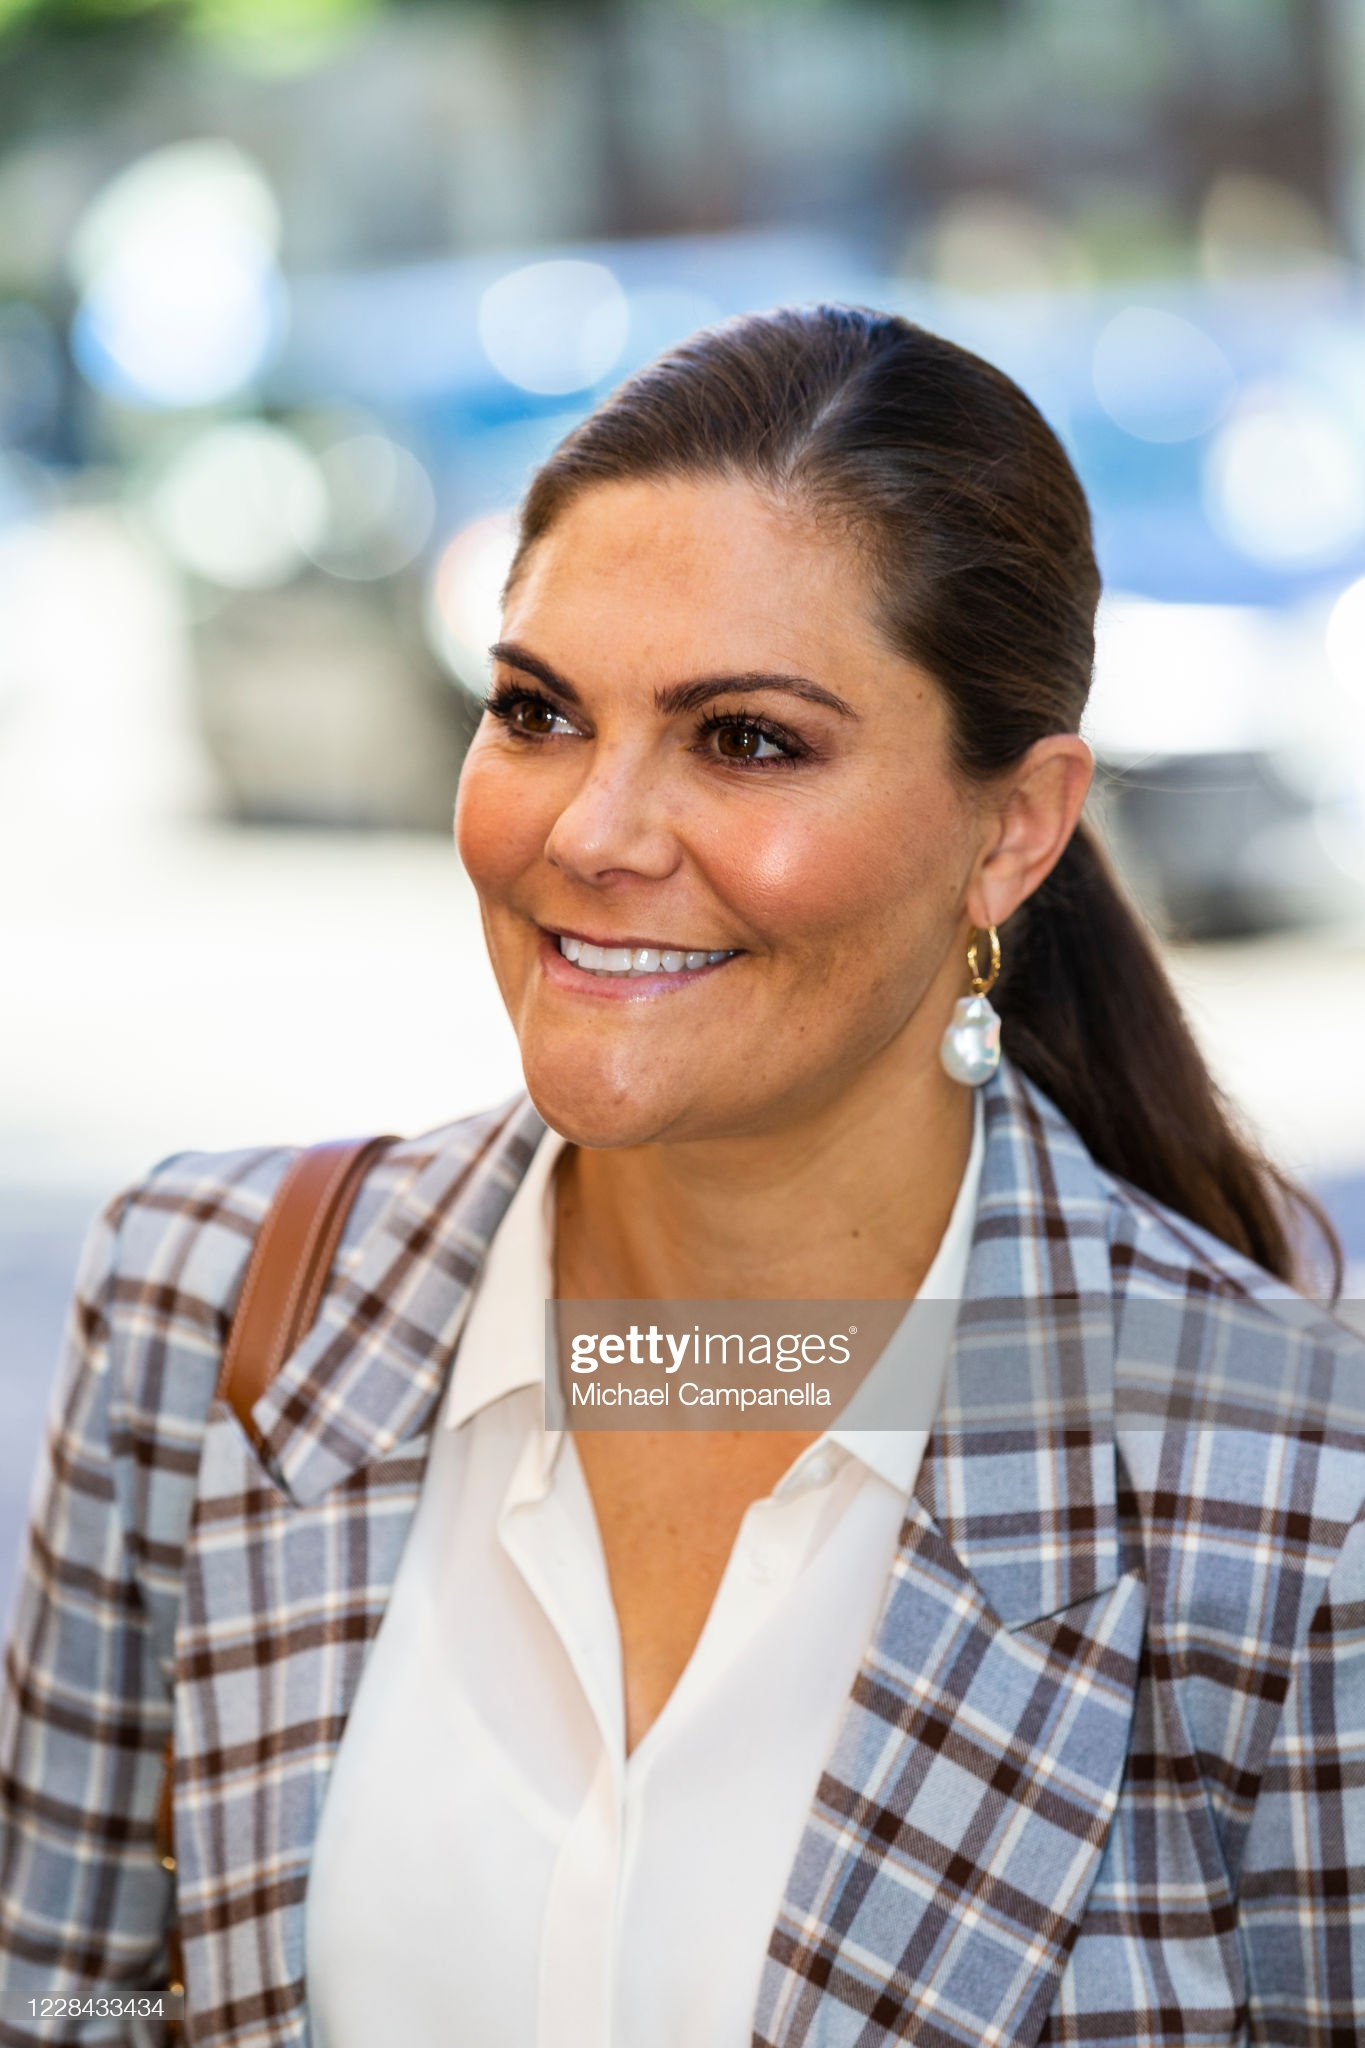 crown-princess-victoria-and-prince-daniel-of-sweden-visit-the-swedish-picture-id1228433434